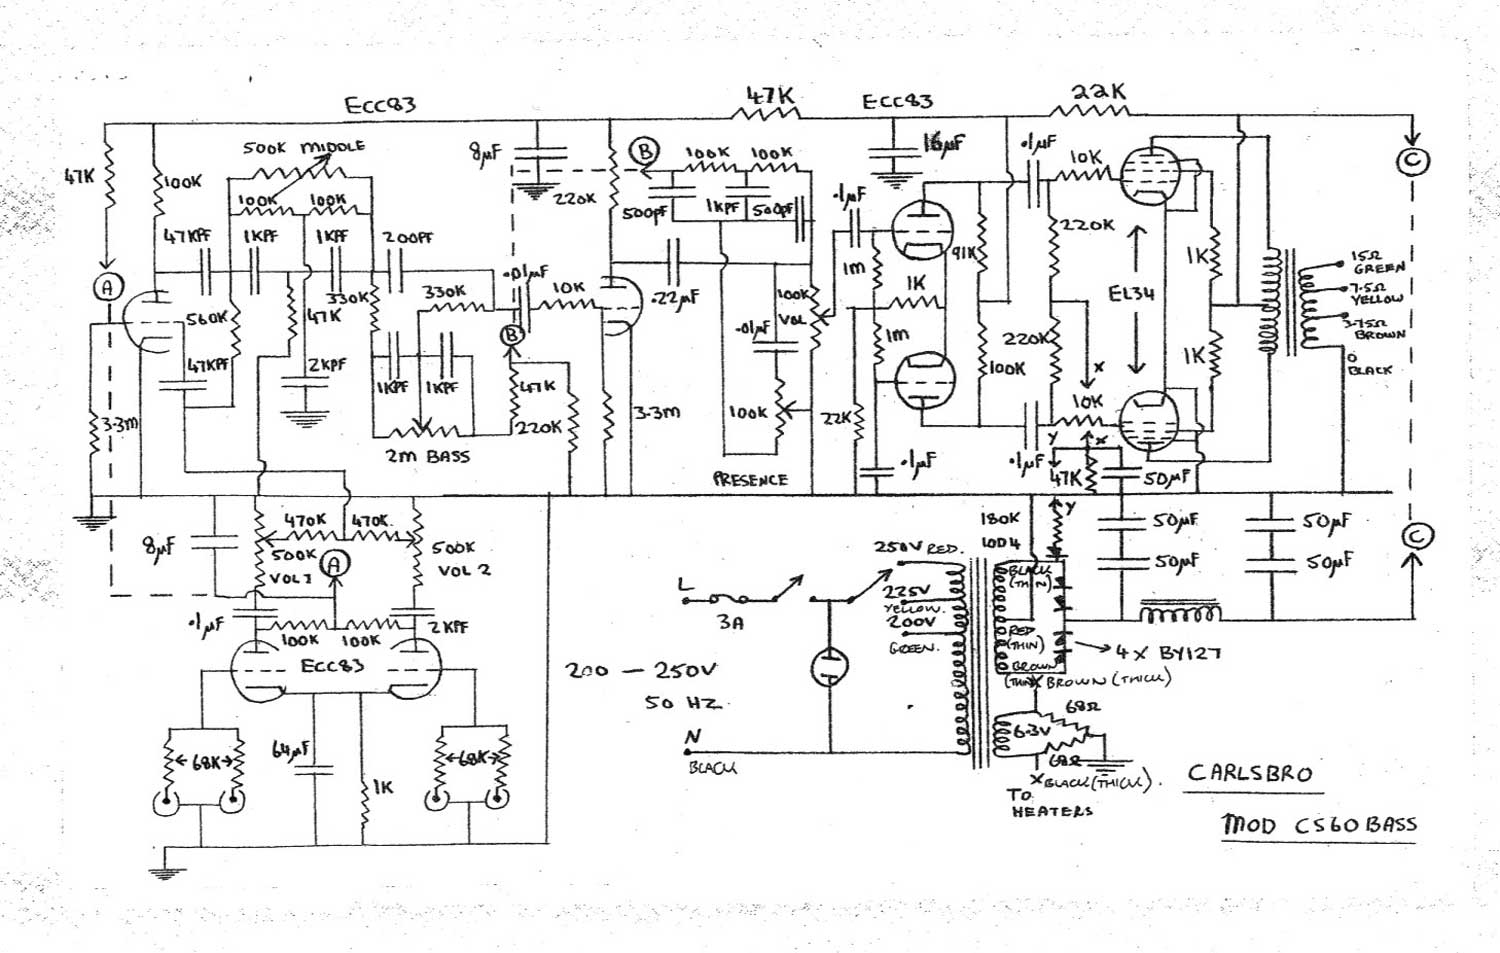 cs60 bass teisco wiring diagram bass guitar pickup wiring \u2022 wiring diagrams guitar amp wiring harness at reclaimingppi.co